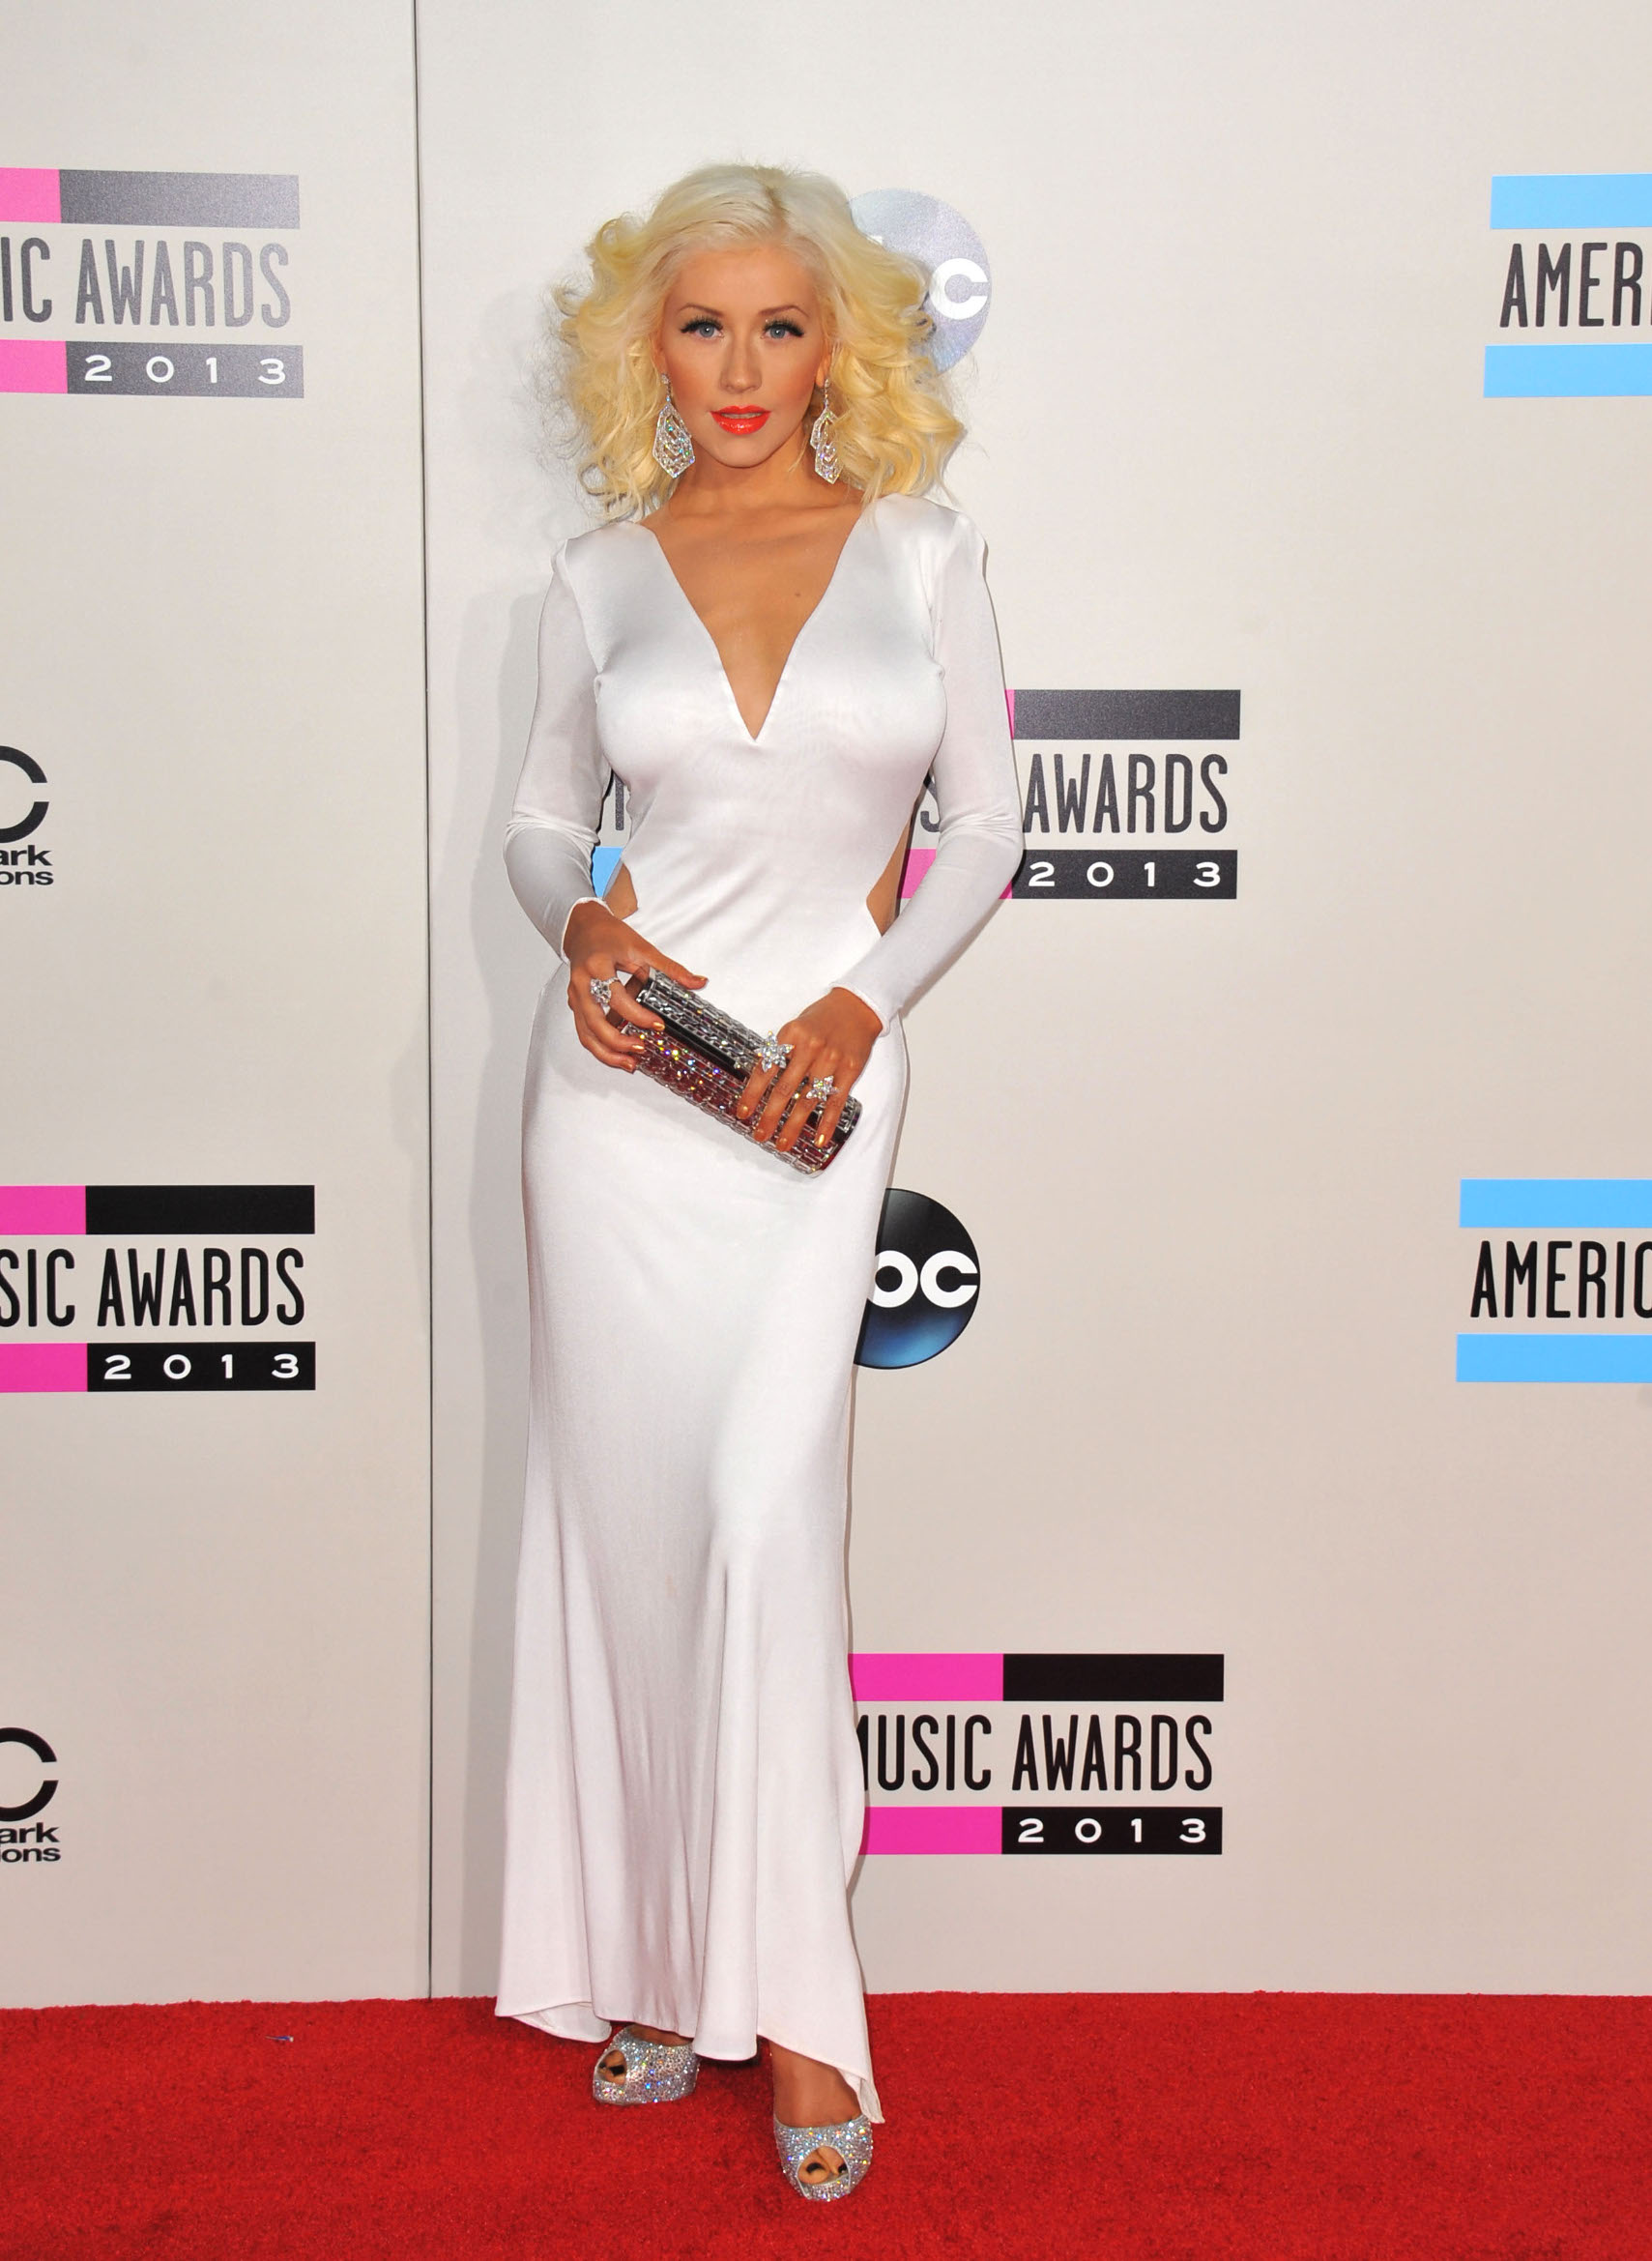 November 24 2013, LA  Christina Aguilera arriving at the 2013 American Music Awards at Nokia Theatre L.A. Live on November 24, 2013 in Los Angeles, California.  By Line: Peter West/ACE Pictures   ACE Pictures, Inc. tel: 646 769 0430 Email: info@acepixs.com, Image: 177780003, License: Rights-managed, Restrictions: Cat.2, Model Release: no, Credit line: Peter West / Acepixs / Profimedia